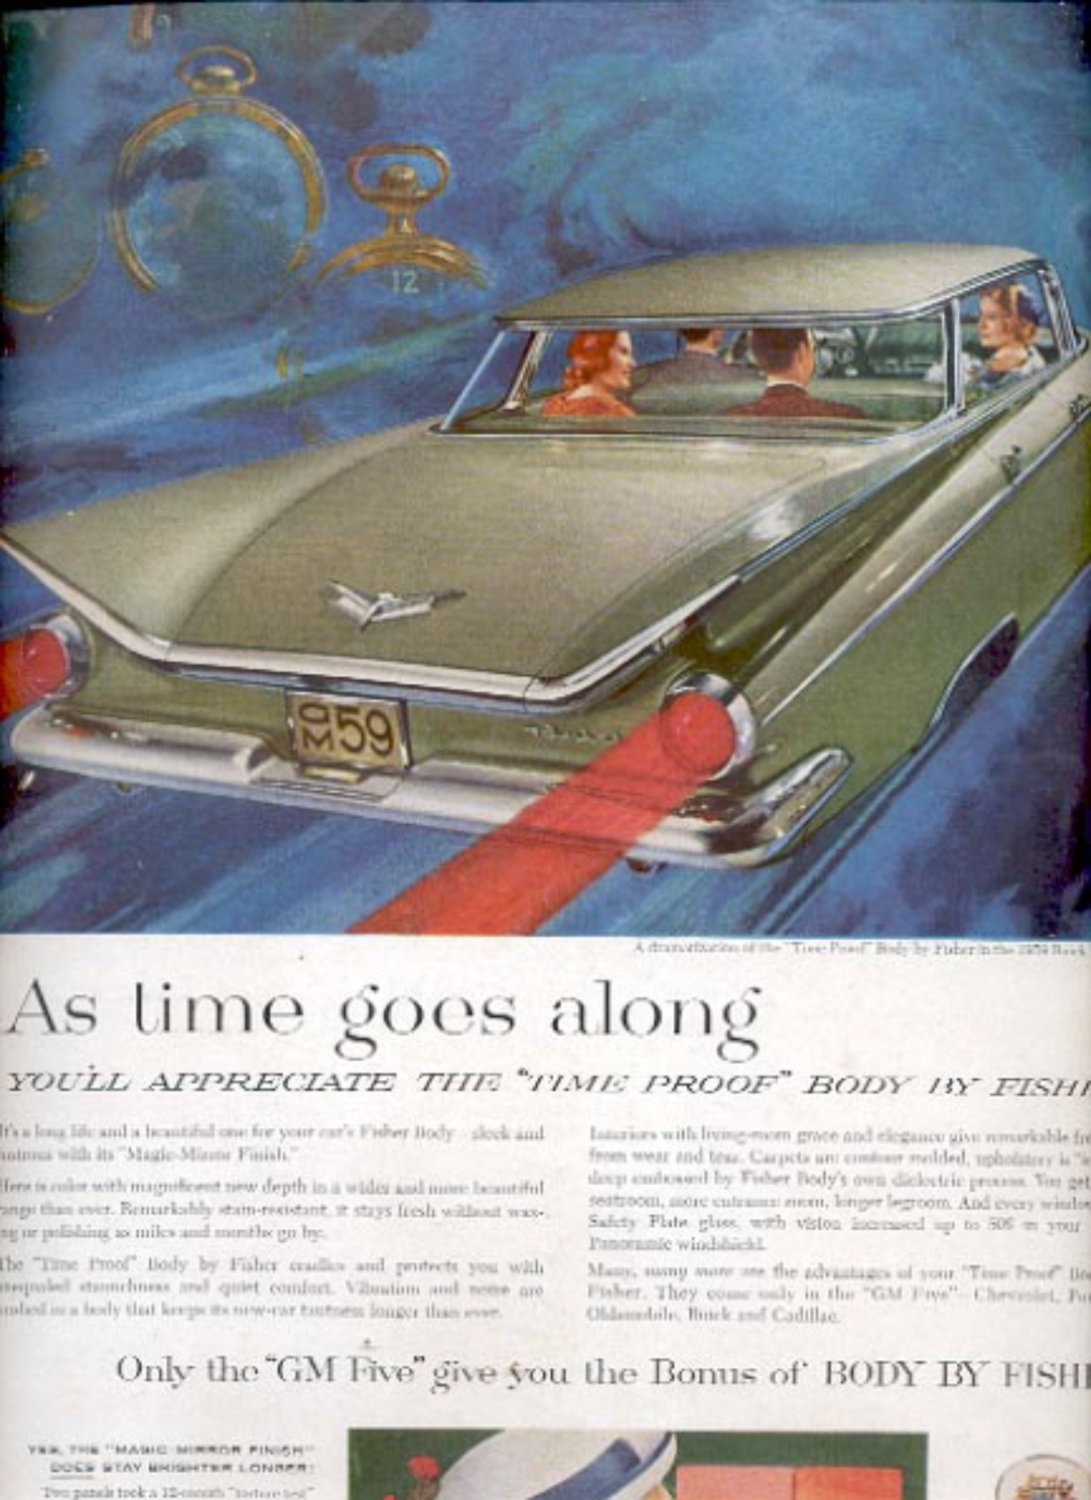 1959   Body by fisher in the 1959 Buick Electra  ad (#5571)